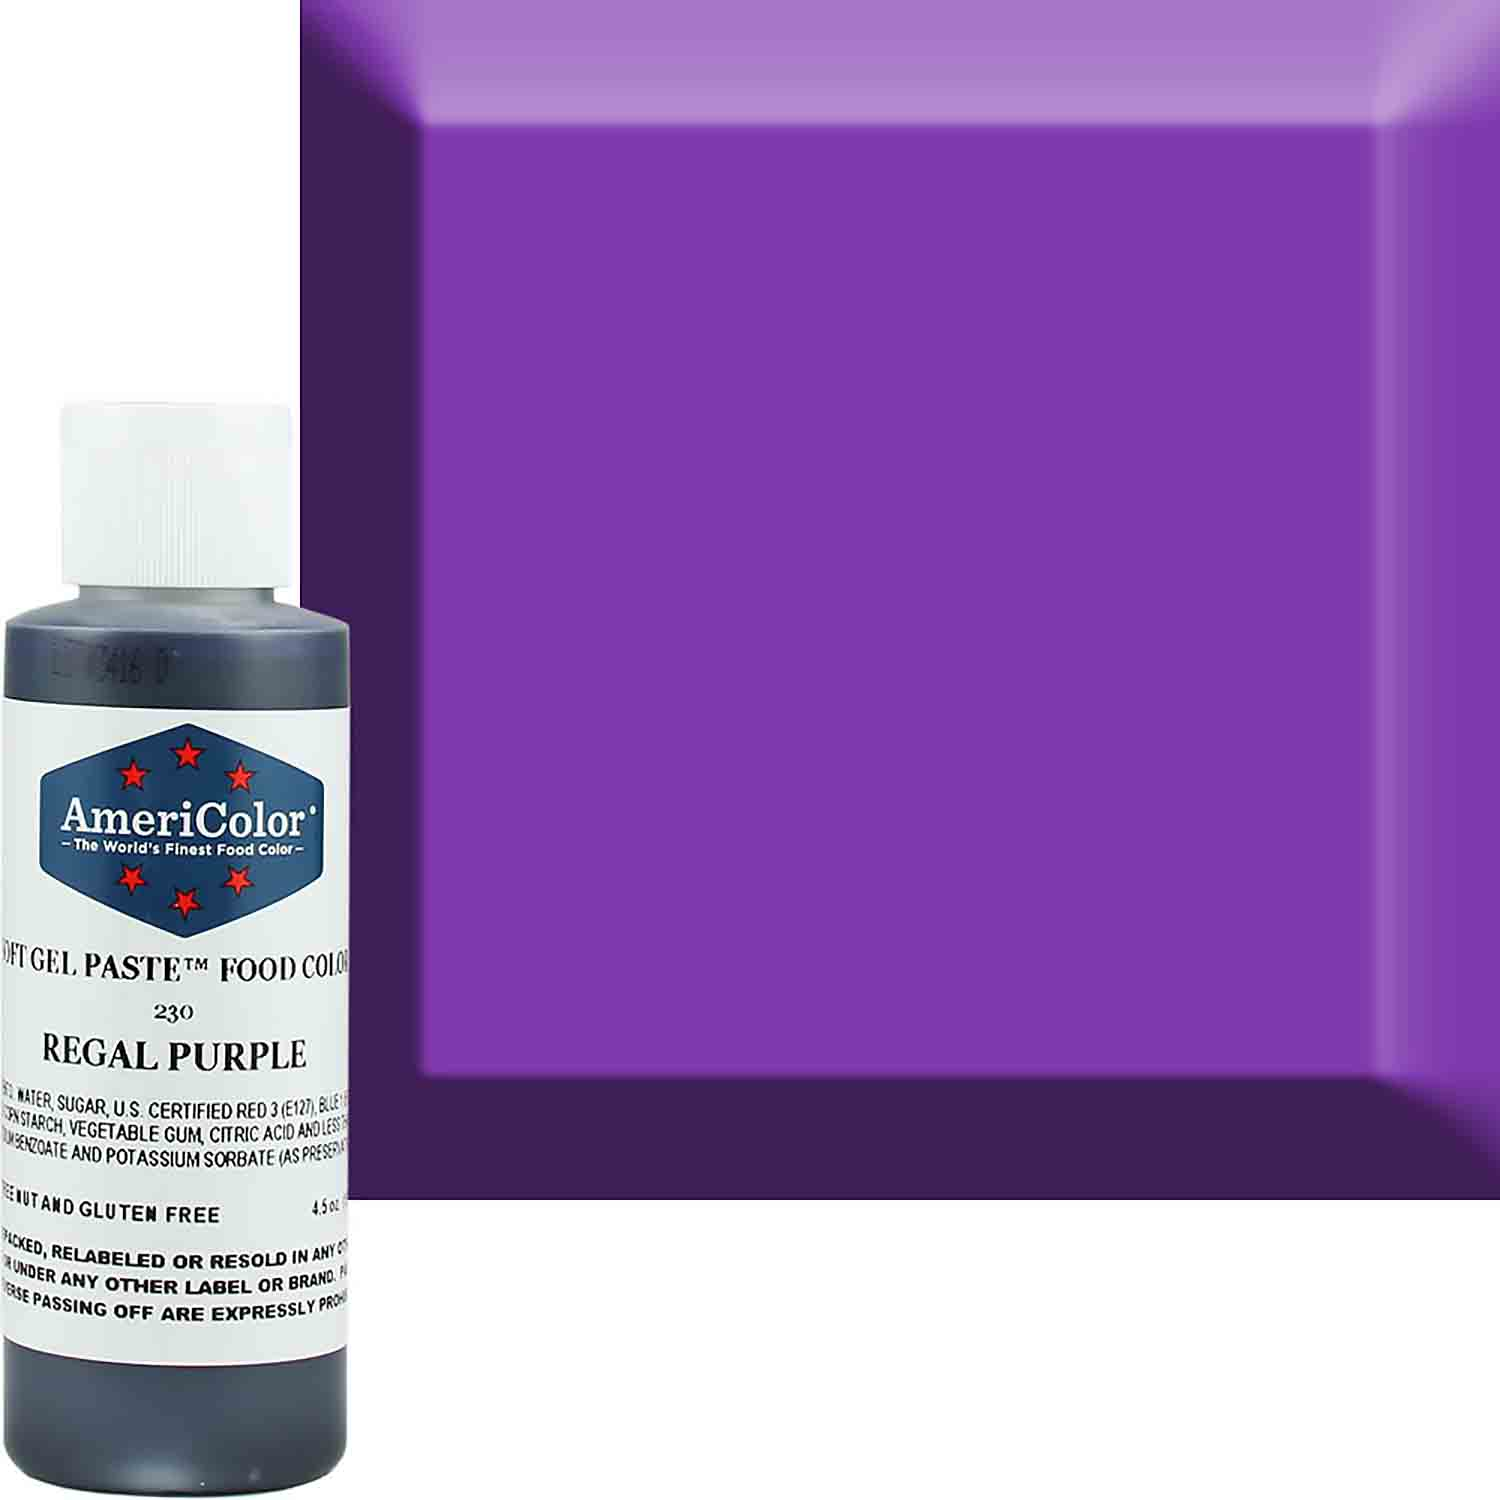 Regal Purple Americolor® Soft Gel Paste Food Color (Old # 41-7830)